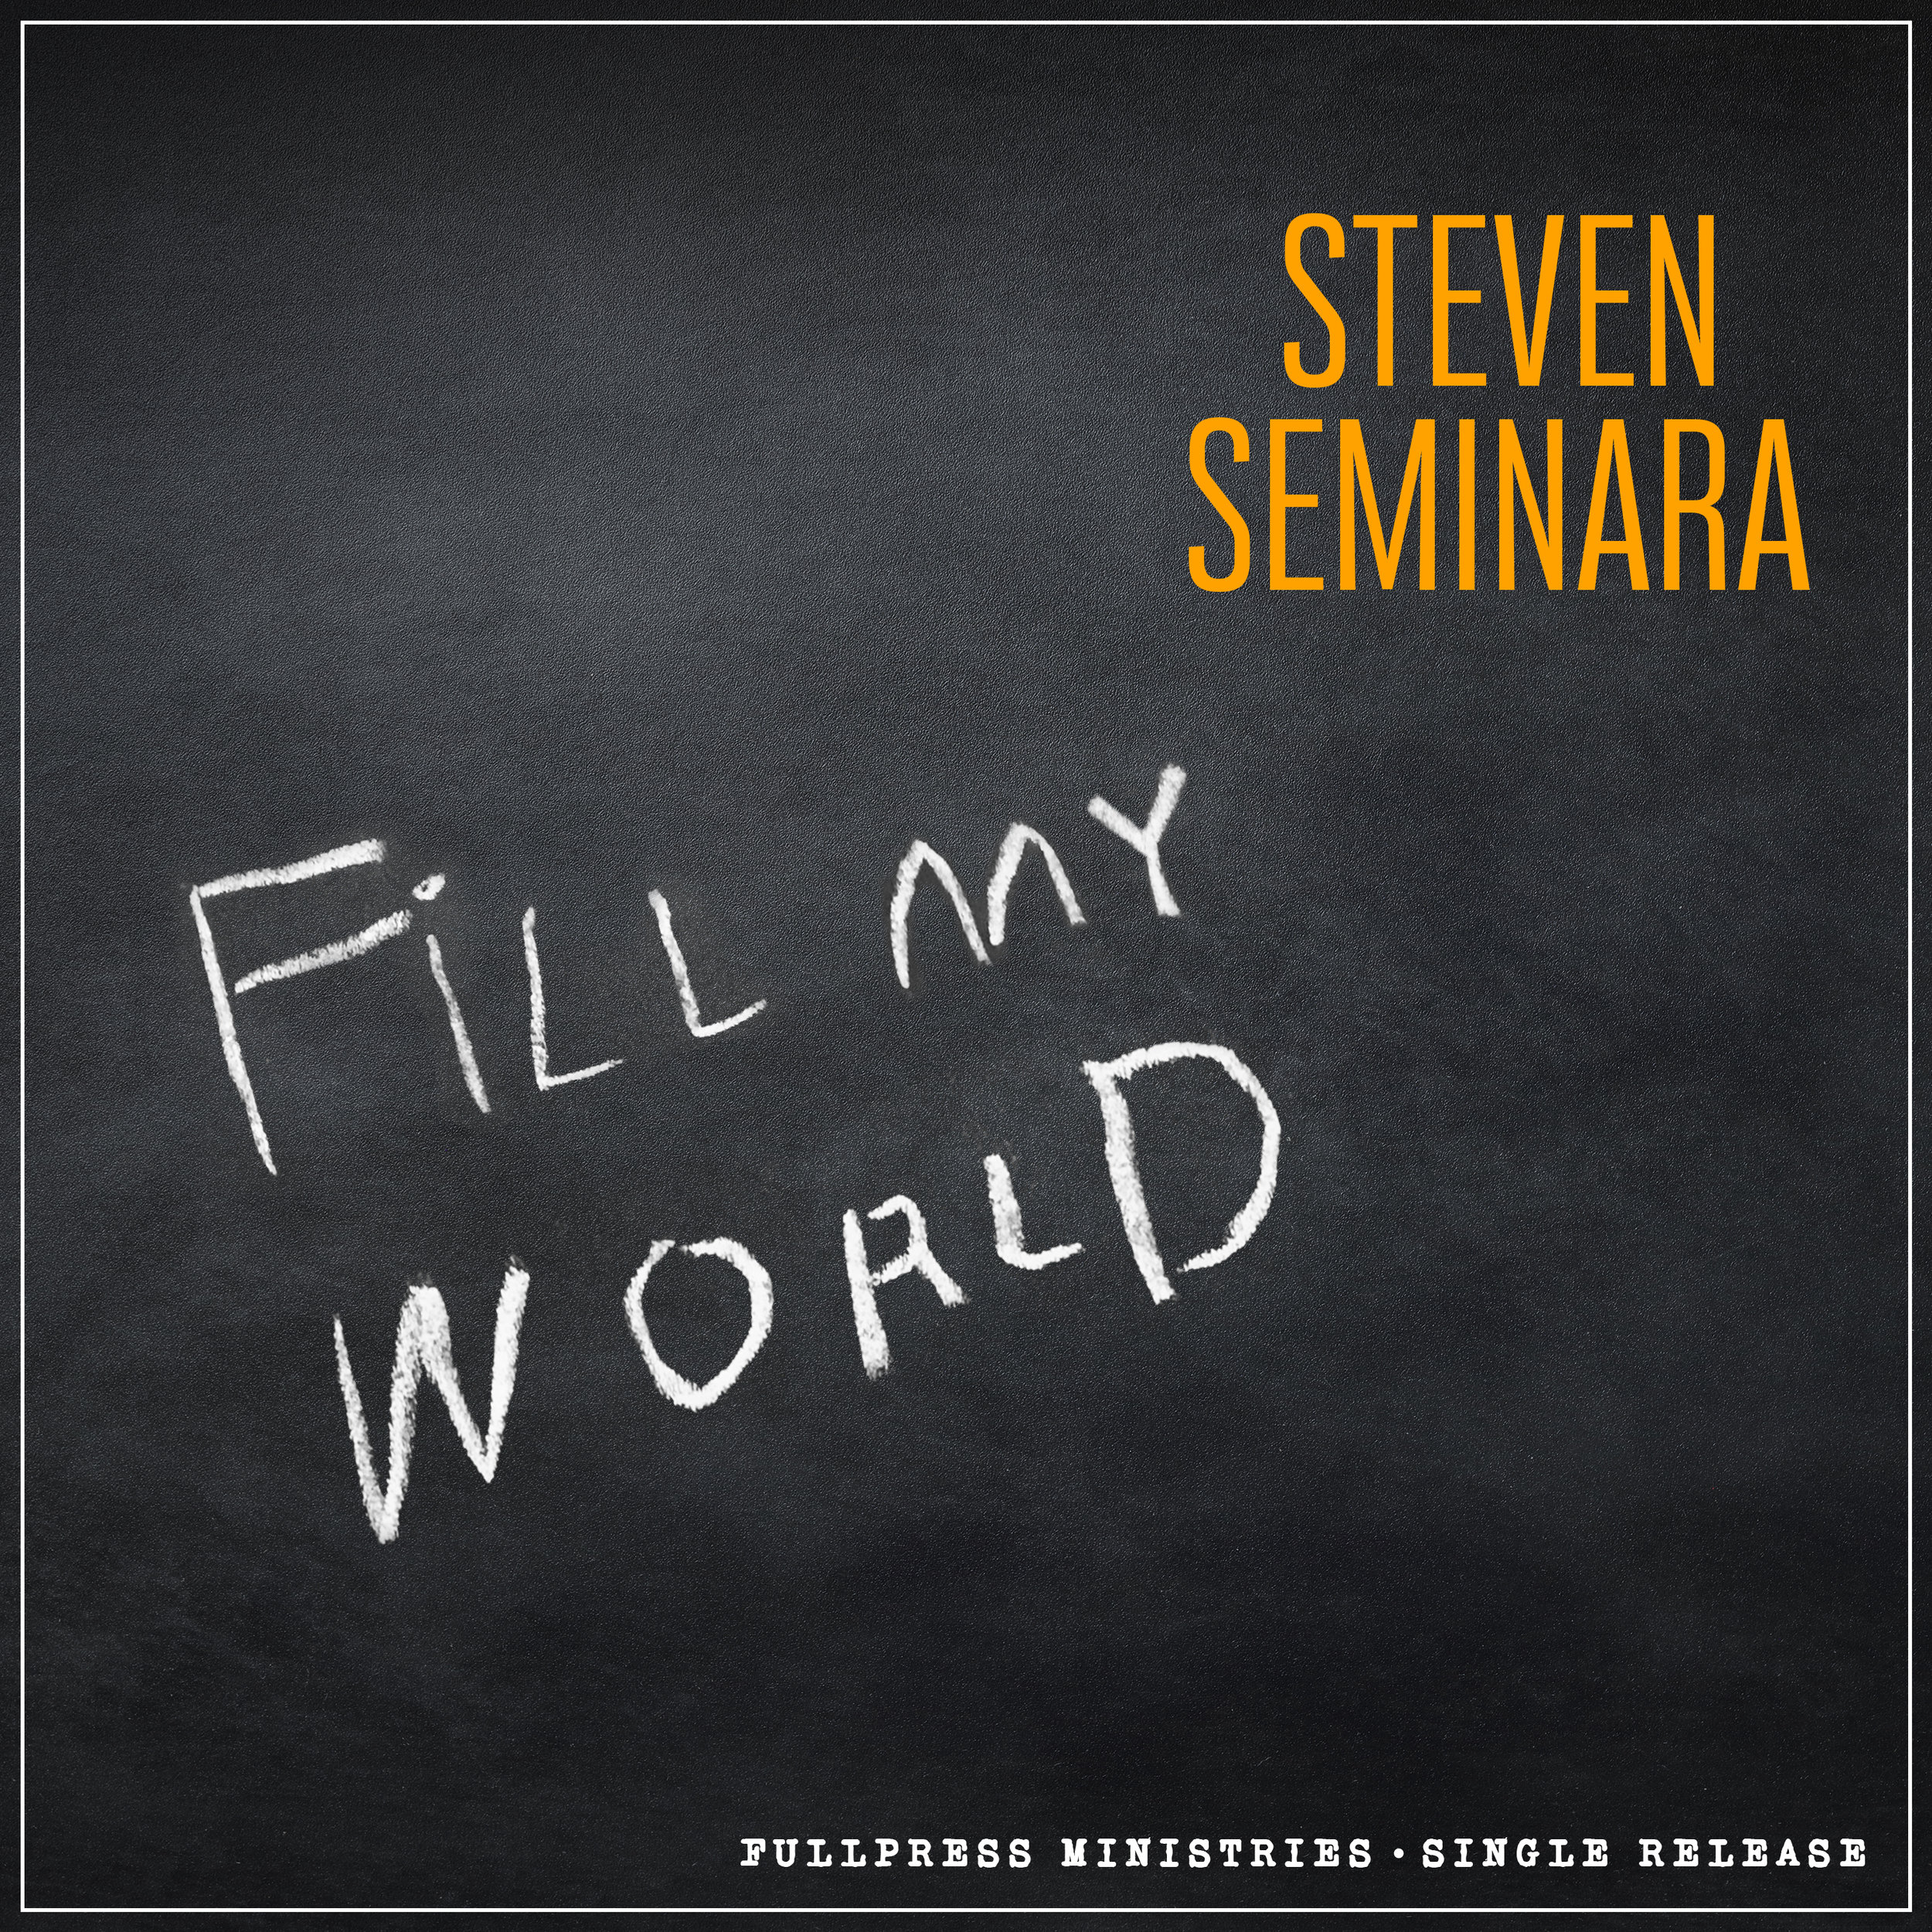 Fill My World - (Single)Click picture for purchase!